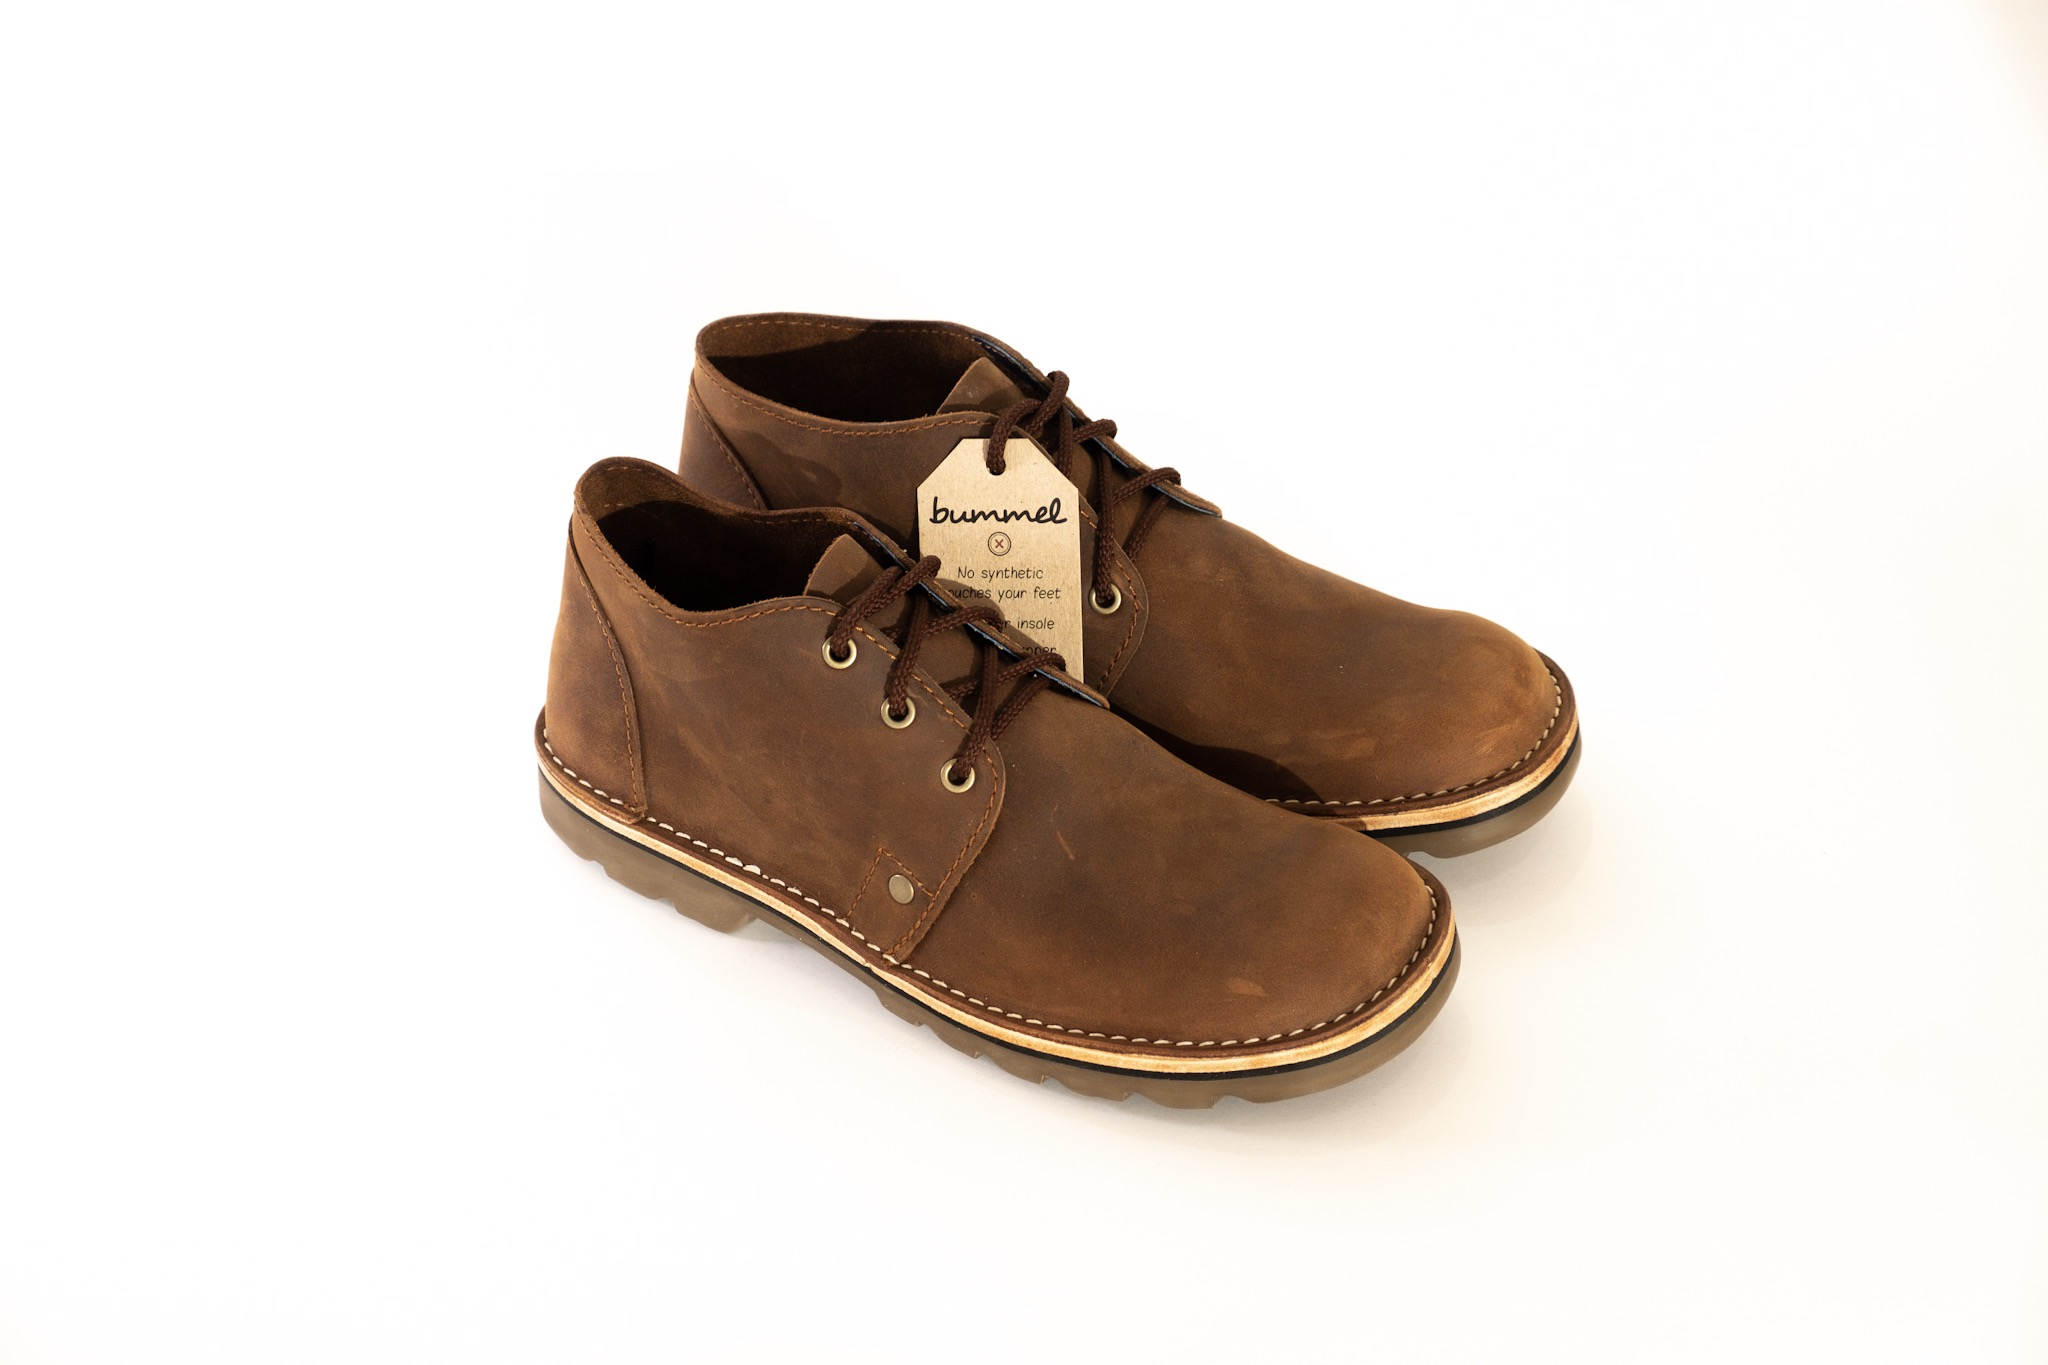 This Savanna Veldskoen is as iconic as the Savanna plains of Africa. It is Bummel's lace up boot - a classic, rugged, handmade Veldskoen. The wide square toe shape is perfect for a person with a wider foot. Only the best full grain leathers are used combined with a veg tanned leather insole and soft leather lining all made in SA. These Savannas come with a rubber sole that is long lasting, not too hard and does not crack. Let your feet feel the luxury of an all leather shoe that is comfortable for years to come. Happy Strollin'!  If stock not available, the Savanna can be made for you on order which will take 3 weeks from the date of payment.  IMPORTANT: Before ordering, please consult the size chart and add your actual foot measurement to the comments section when ordering. Click to view size chart and foot measurements.  For extra comfort and care add aBummel leather footbed and leather foodto your cart.  Find out more interesting facts about Bummel Shoes - read more...  FREE SA shipping of orders over R1000.